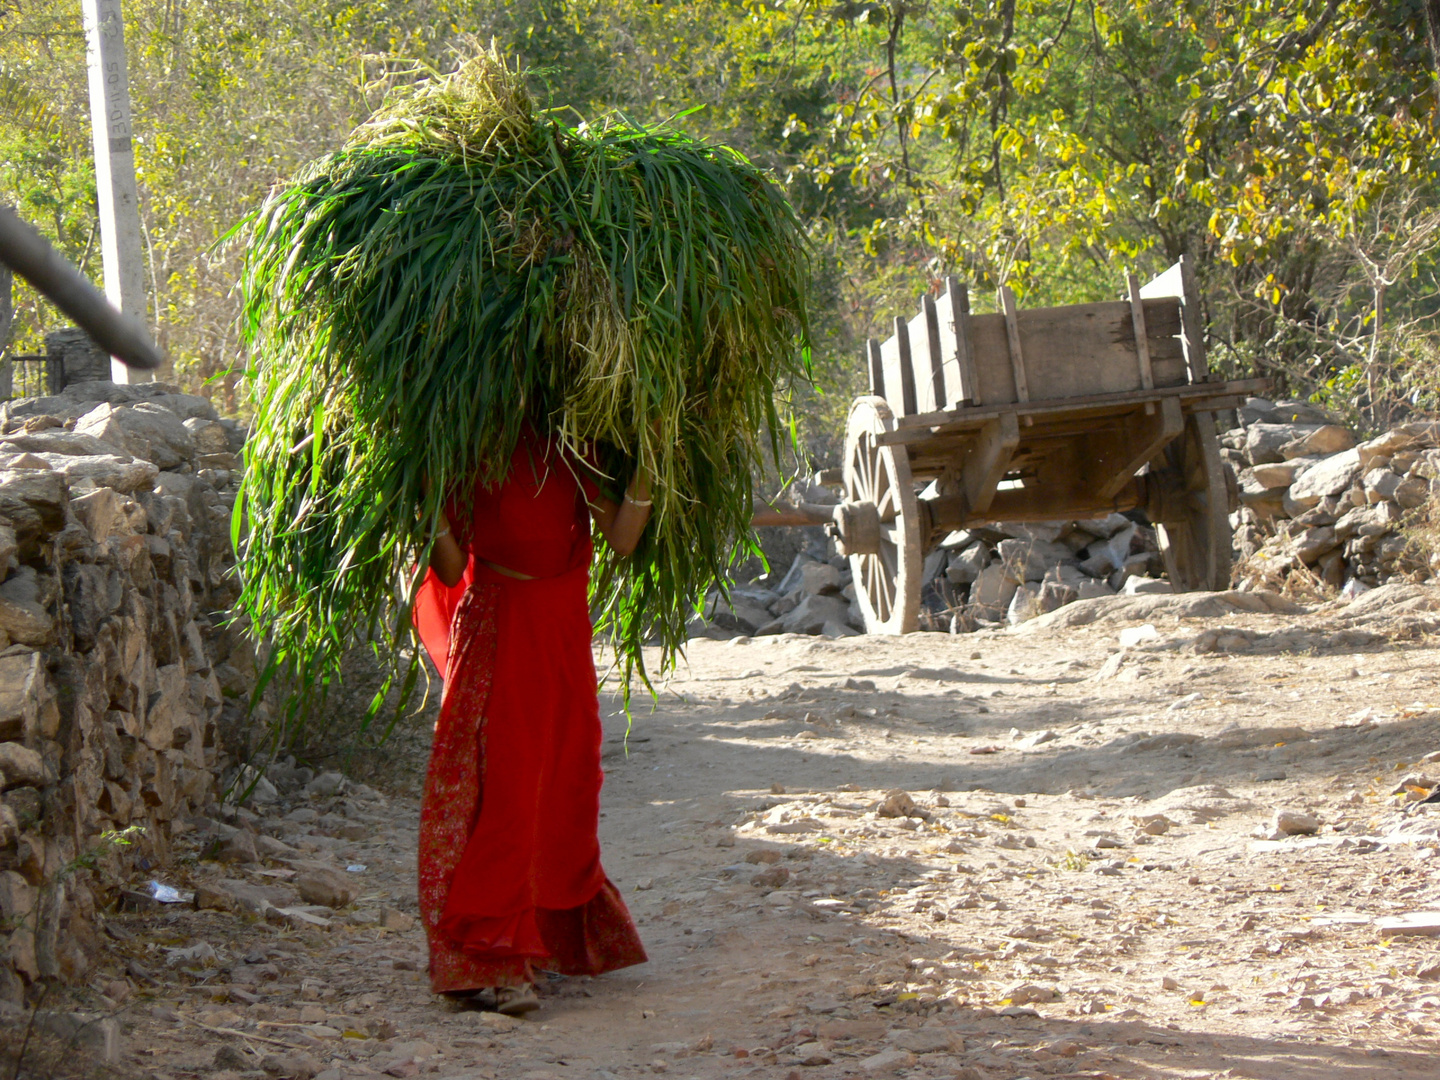 Red and Green in a Village near Udaipur